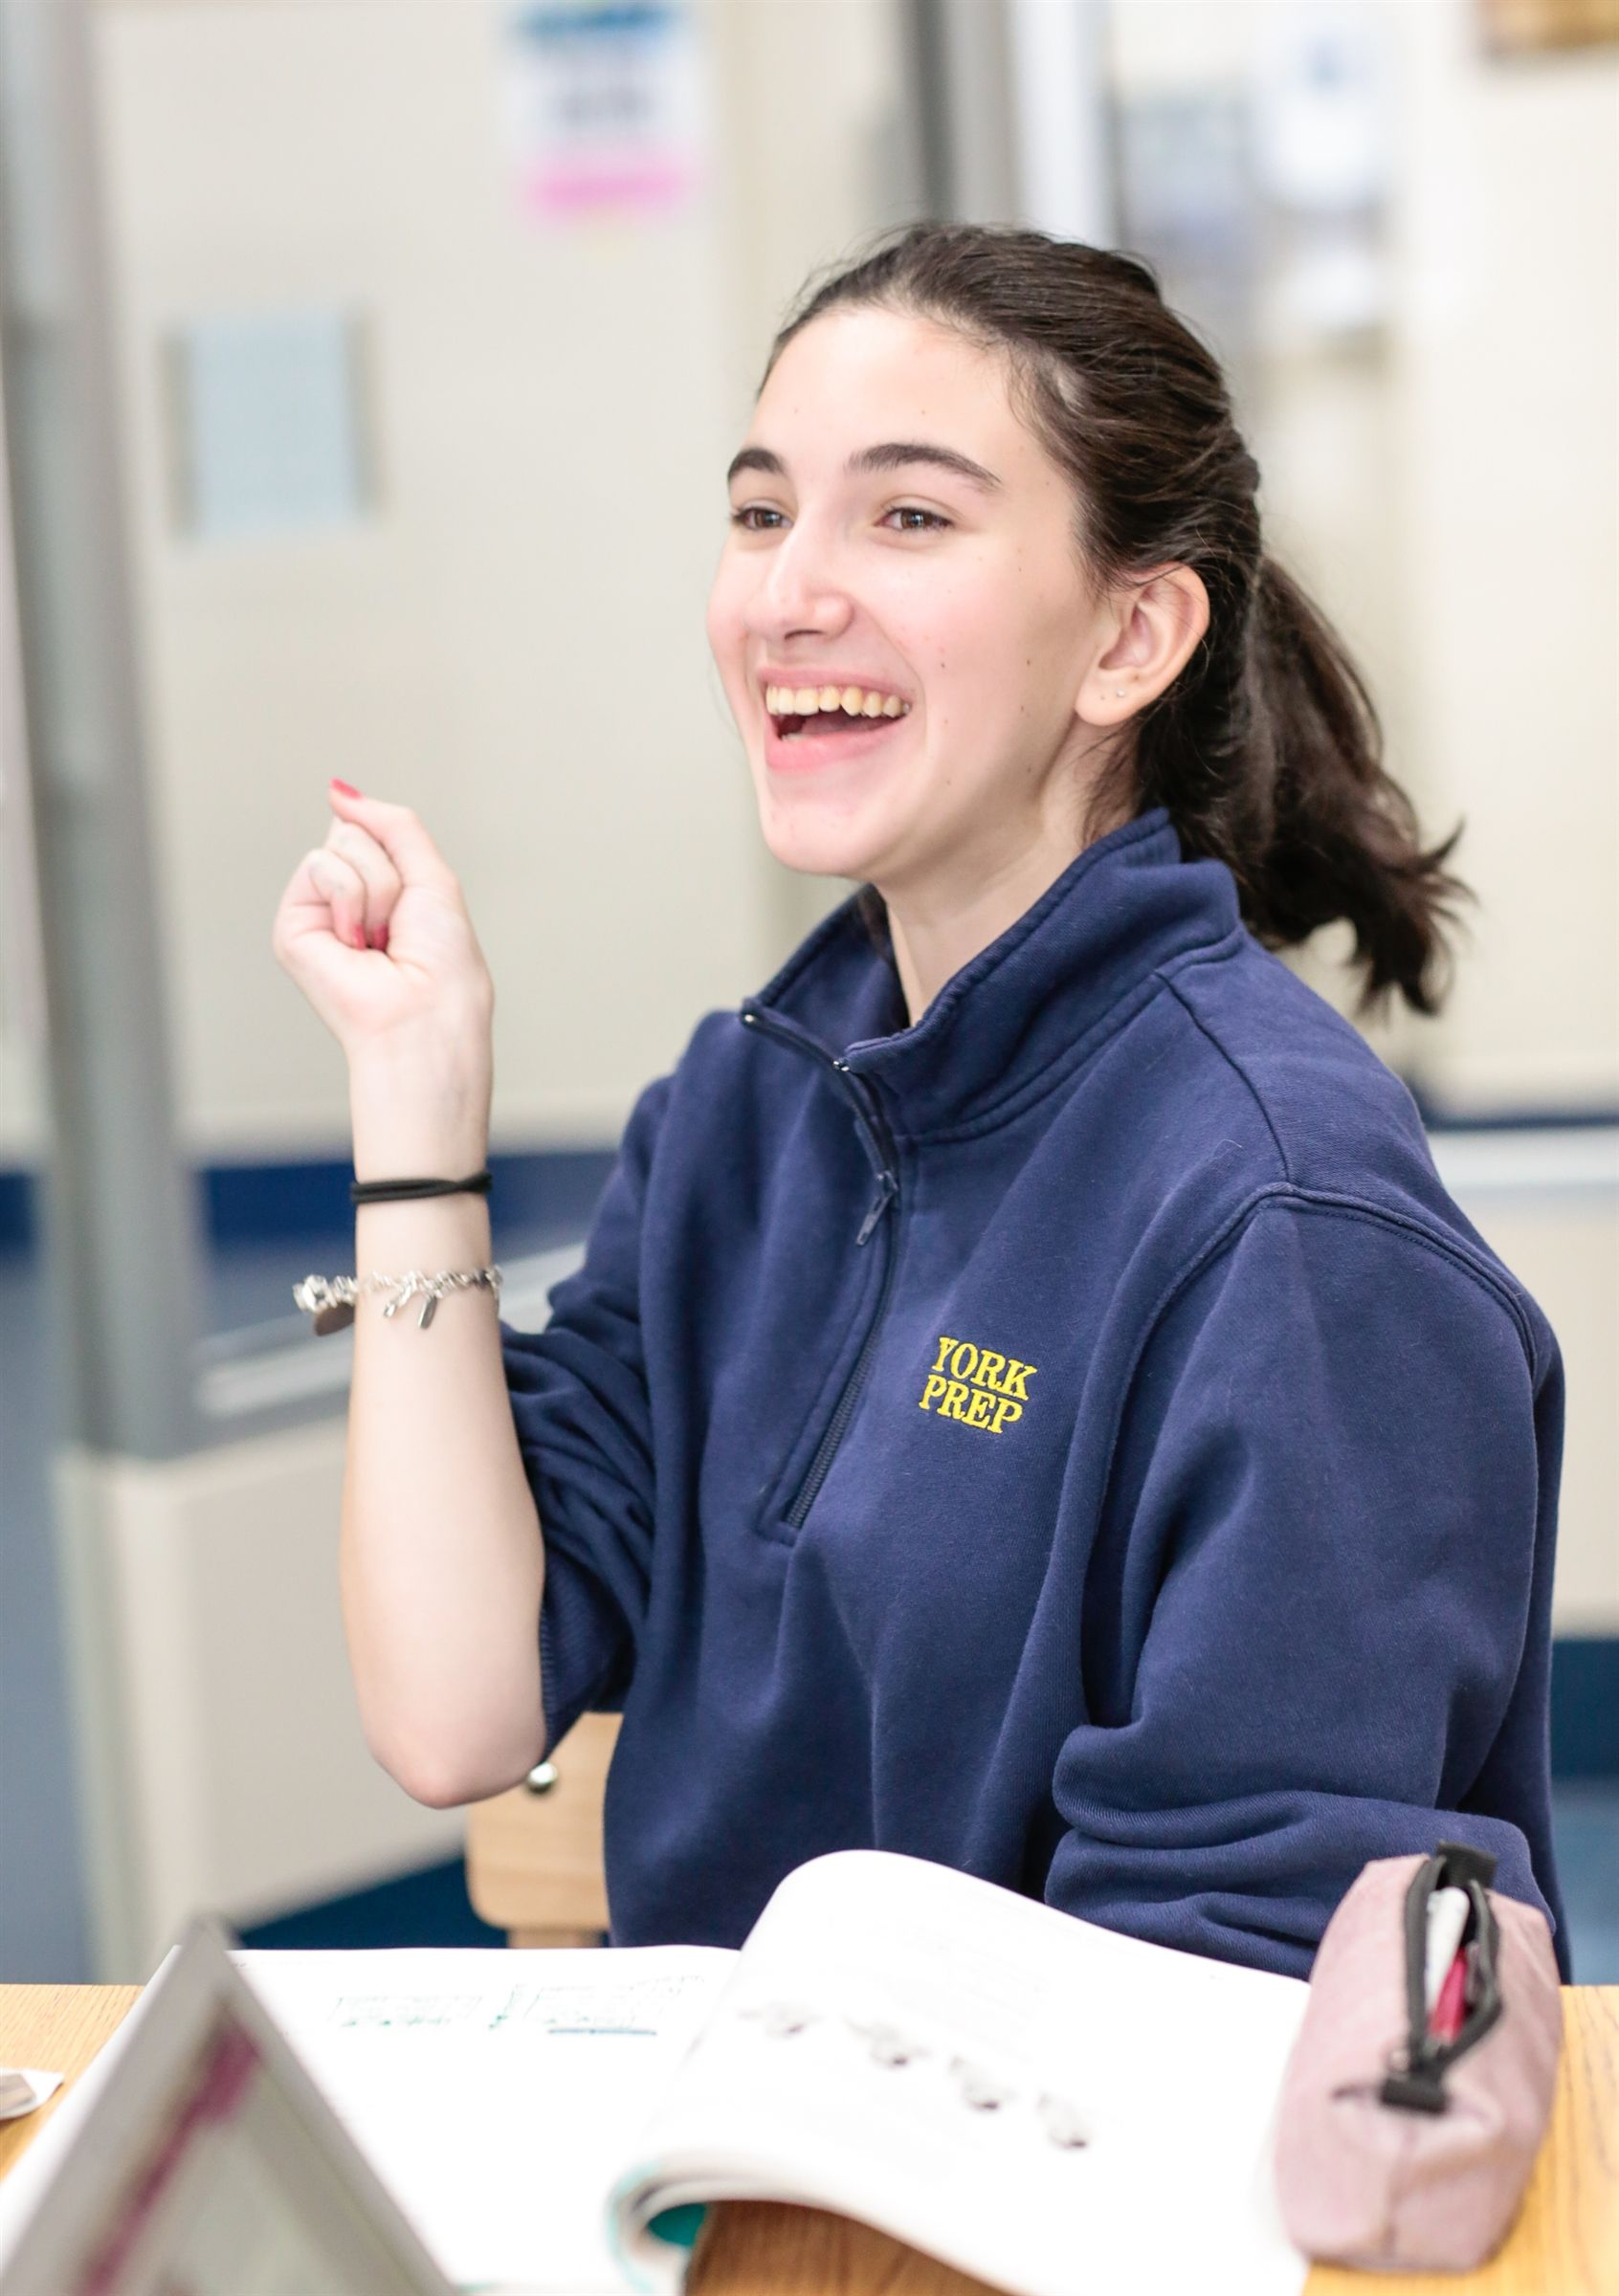 York Prep high school student in American Sign Language class